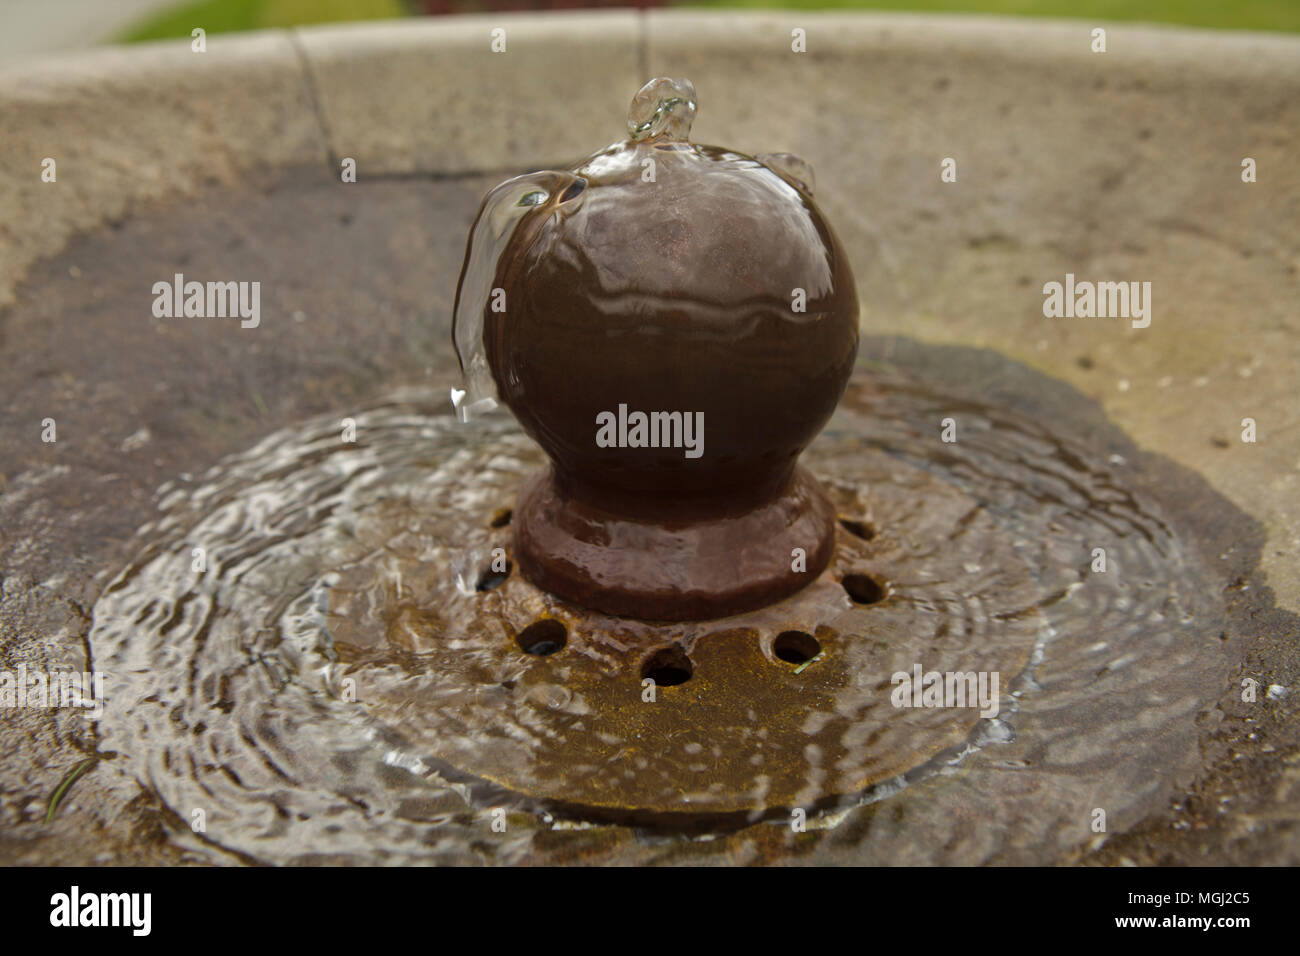 little water fountain - Stock Image